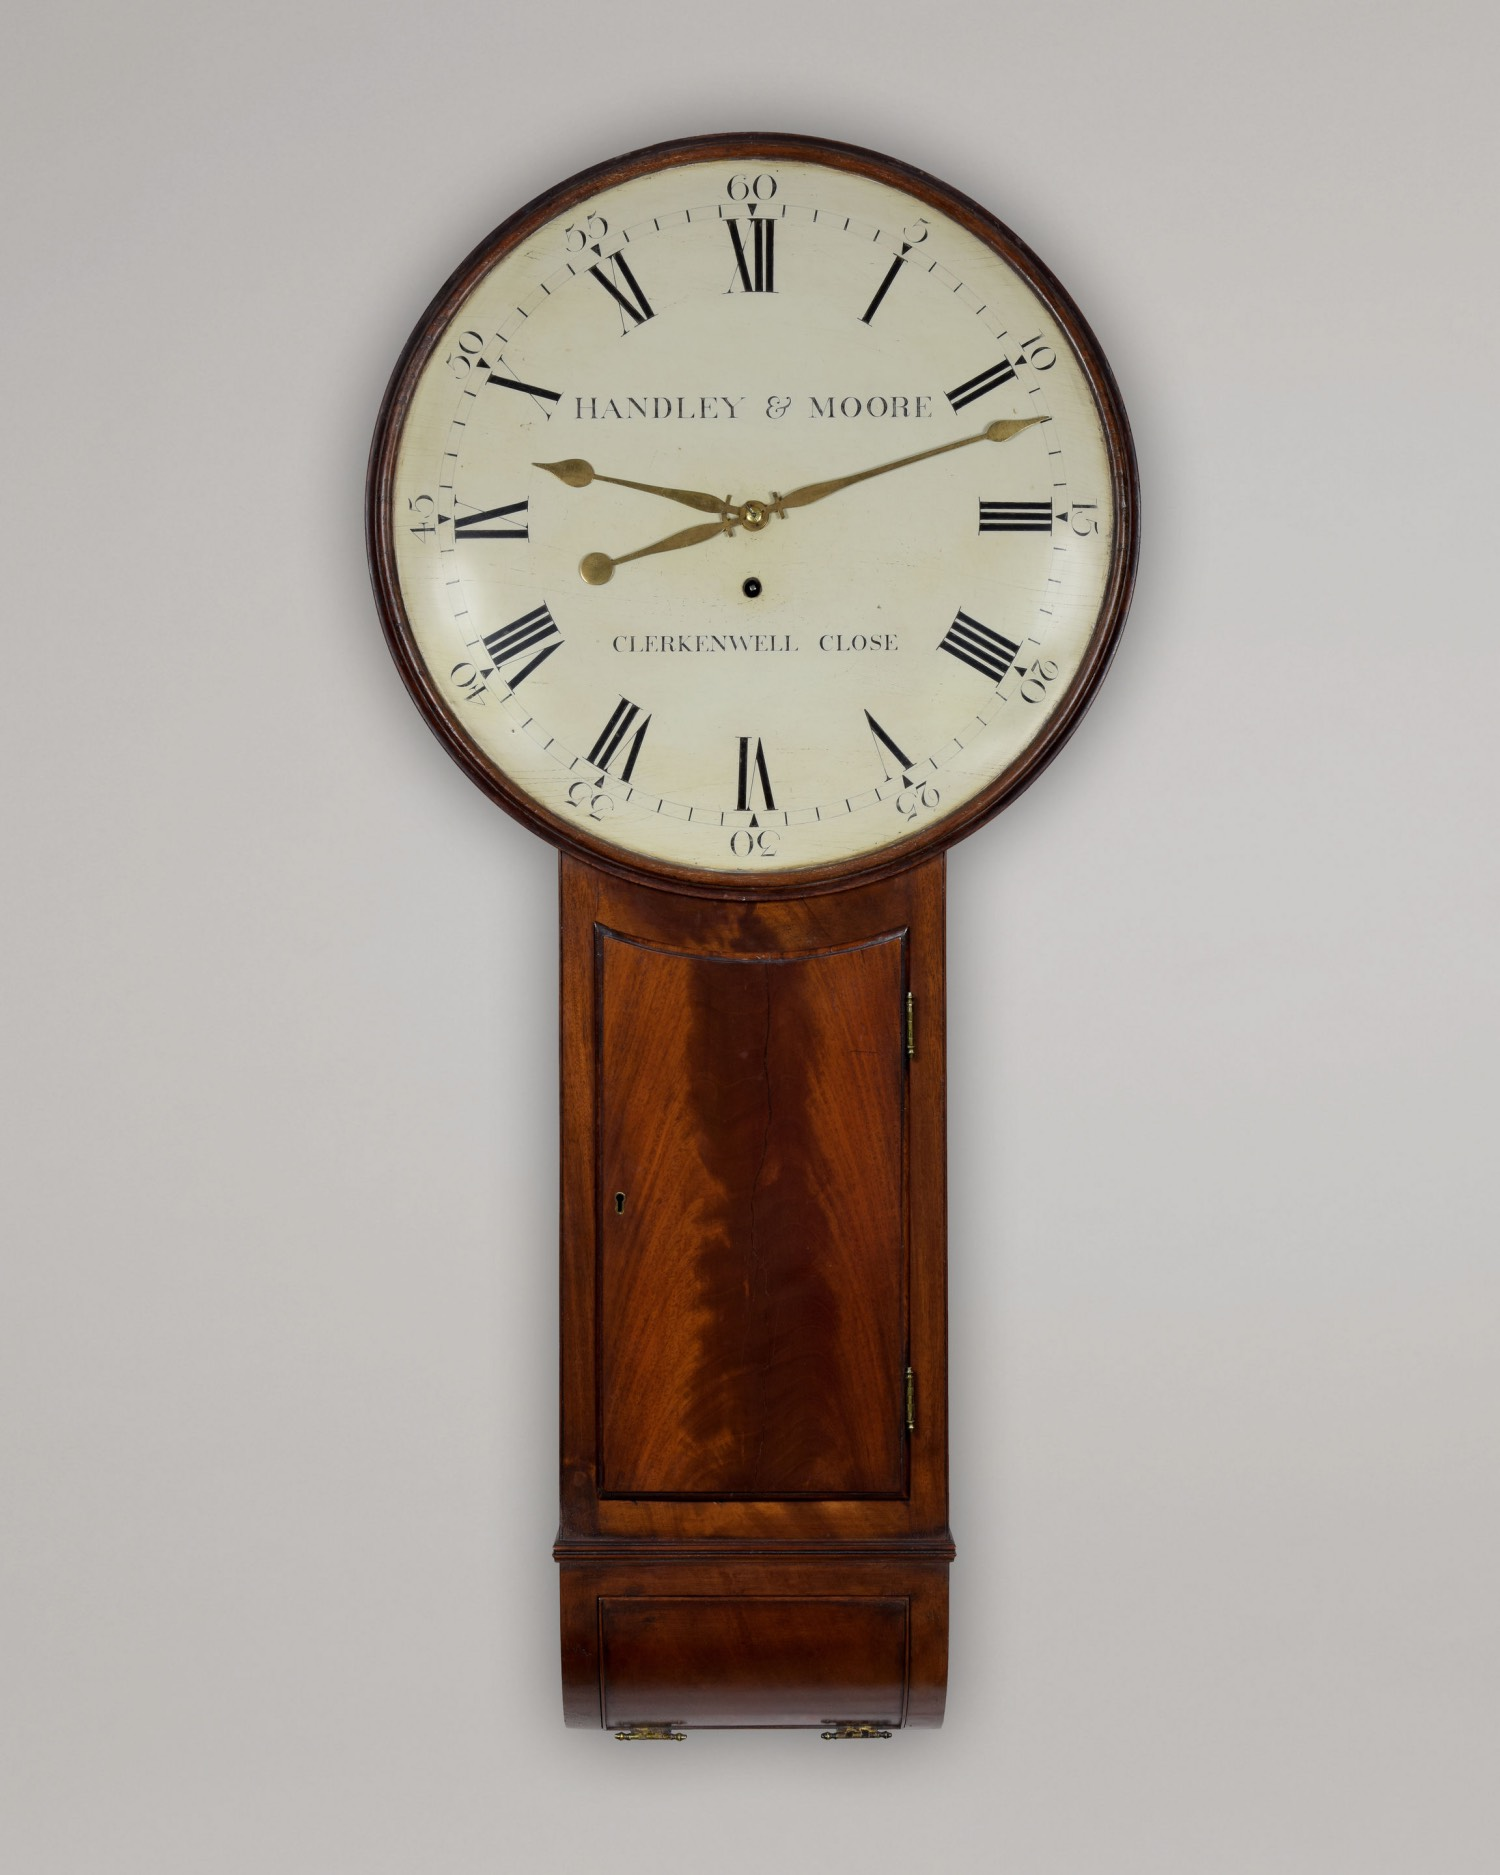 HANDLEY & MOORE. A FINE, MAHOGANY TAVERN CLOCK BY THIS WELL-KNOWN LONDON PARTNERSHIP.